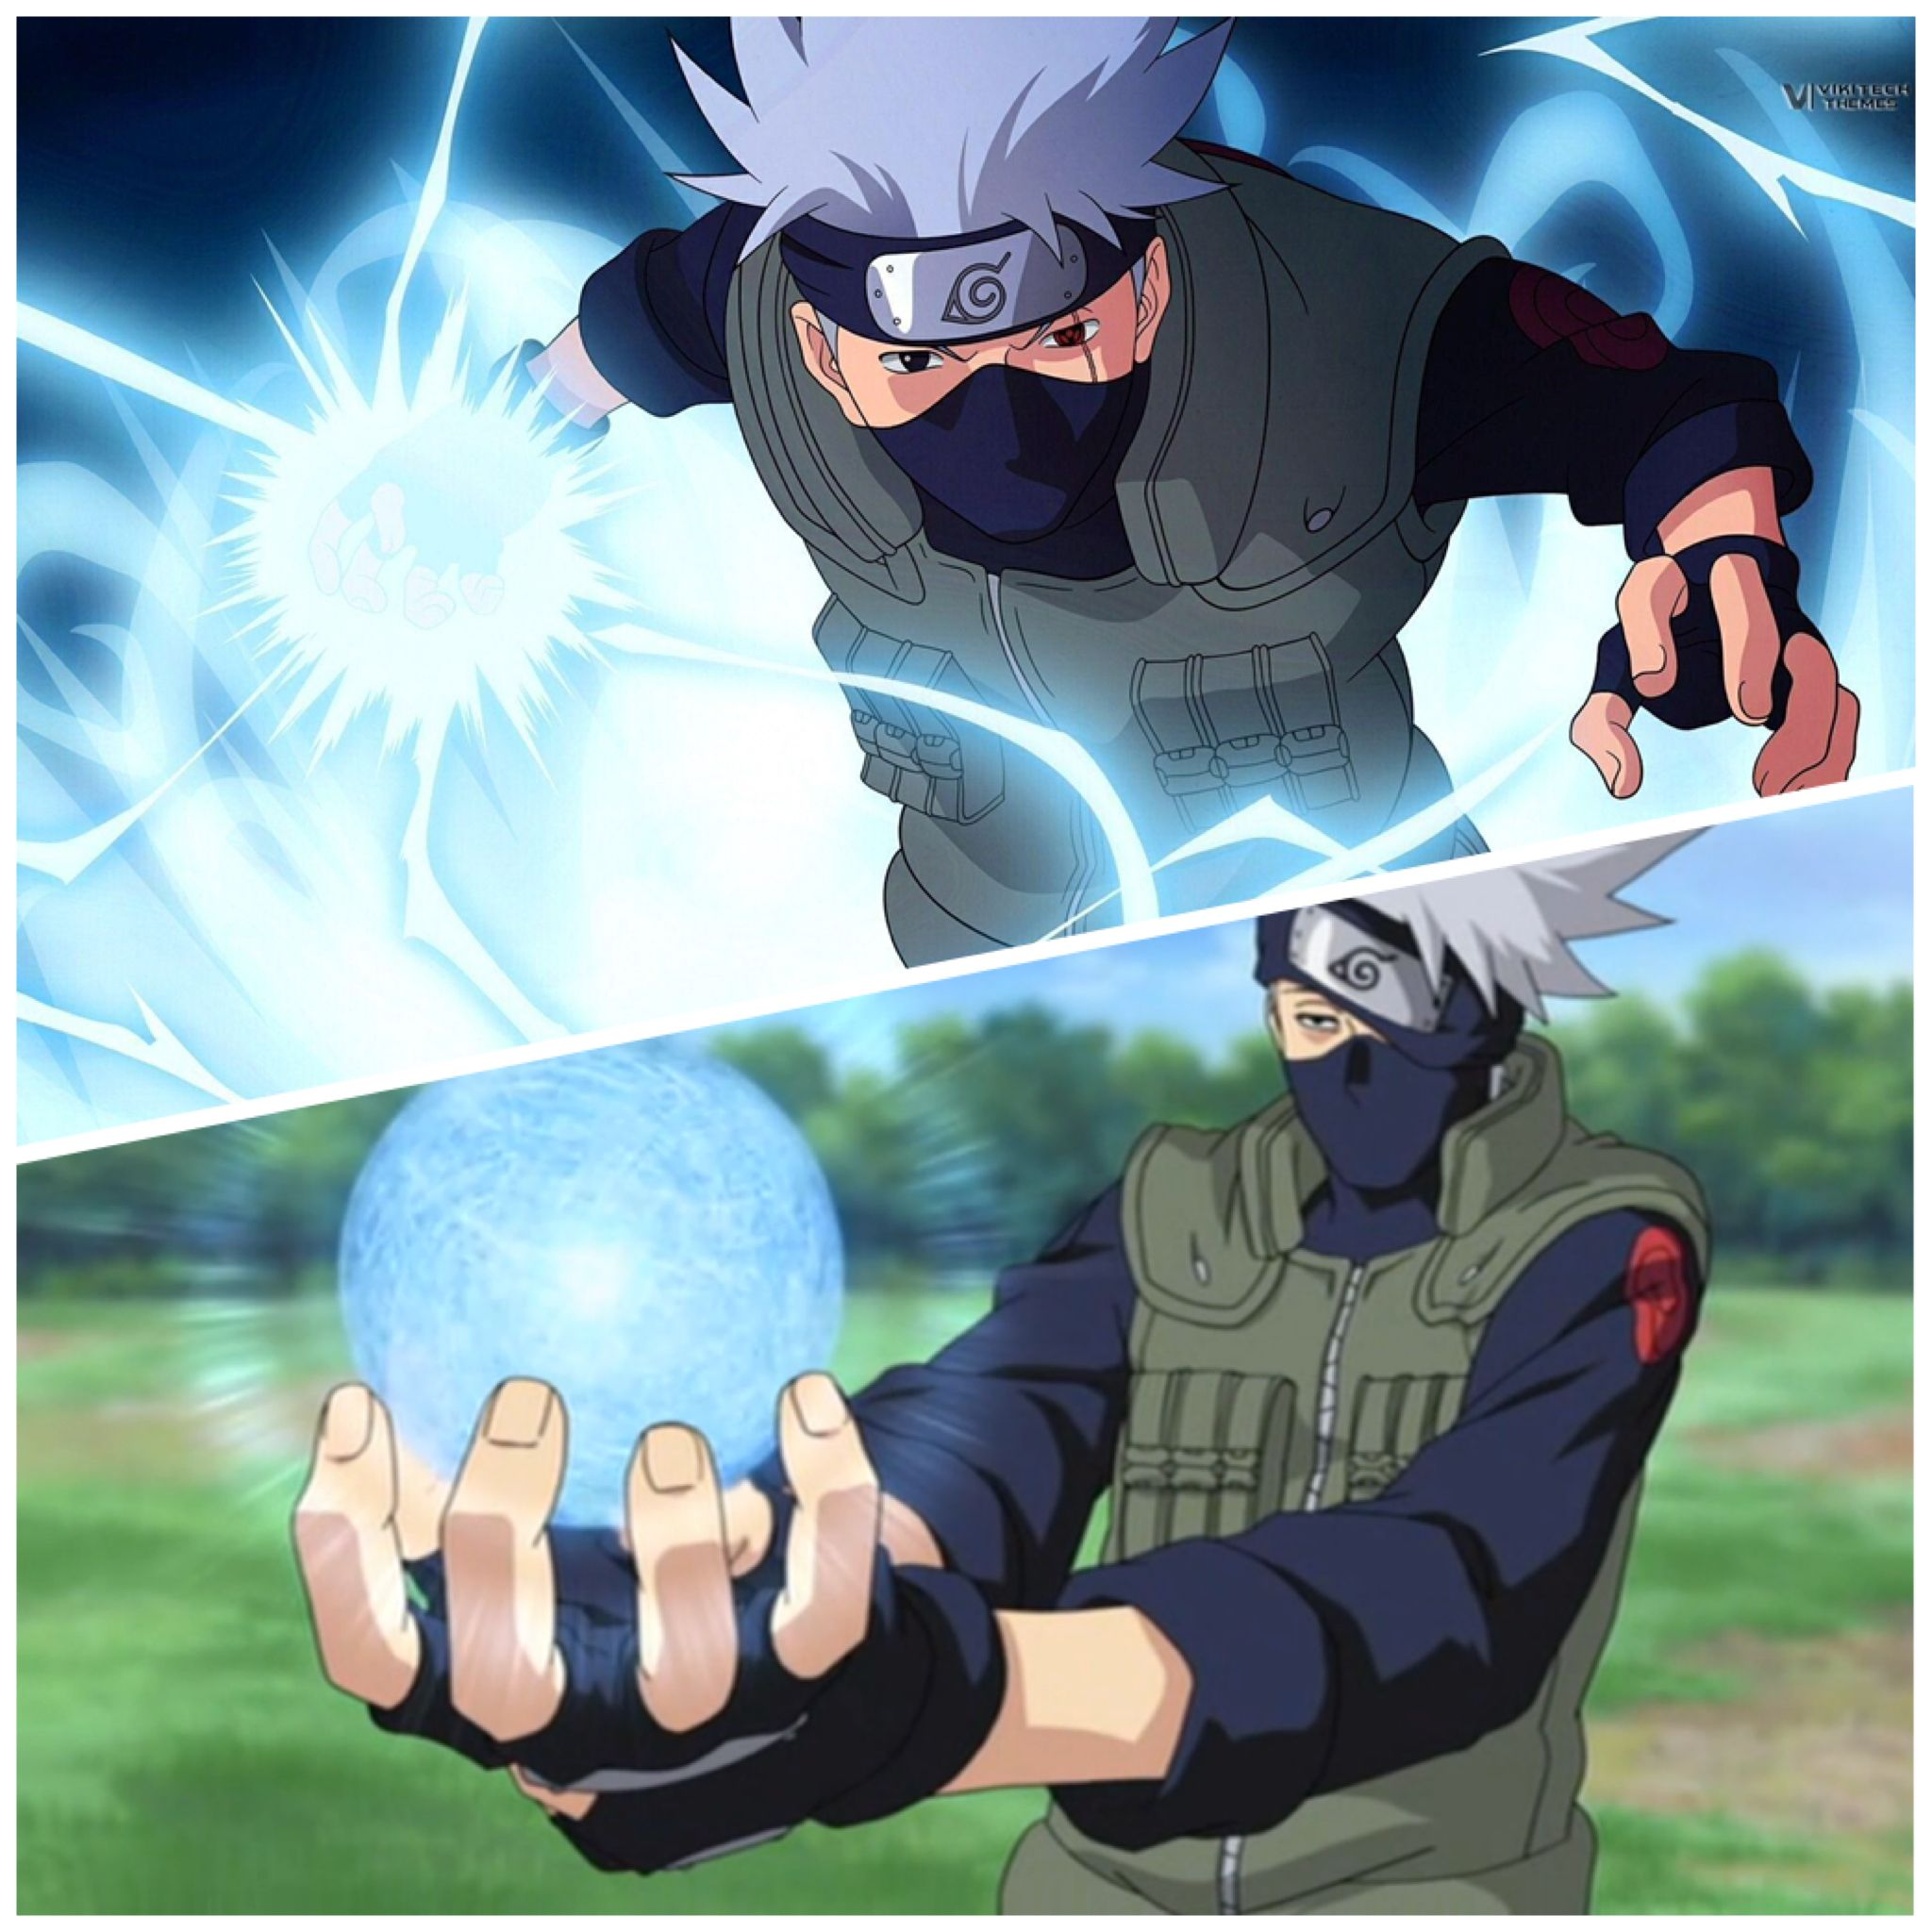 Adding an element would make it much more powerful and because Kakashi was unable to he thus created the Chidori.  sc 1 st  OtakuKart & Boruto May Be The First Ninja To Complete This! - OtakuKart